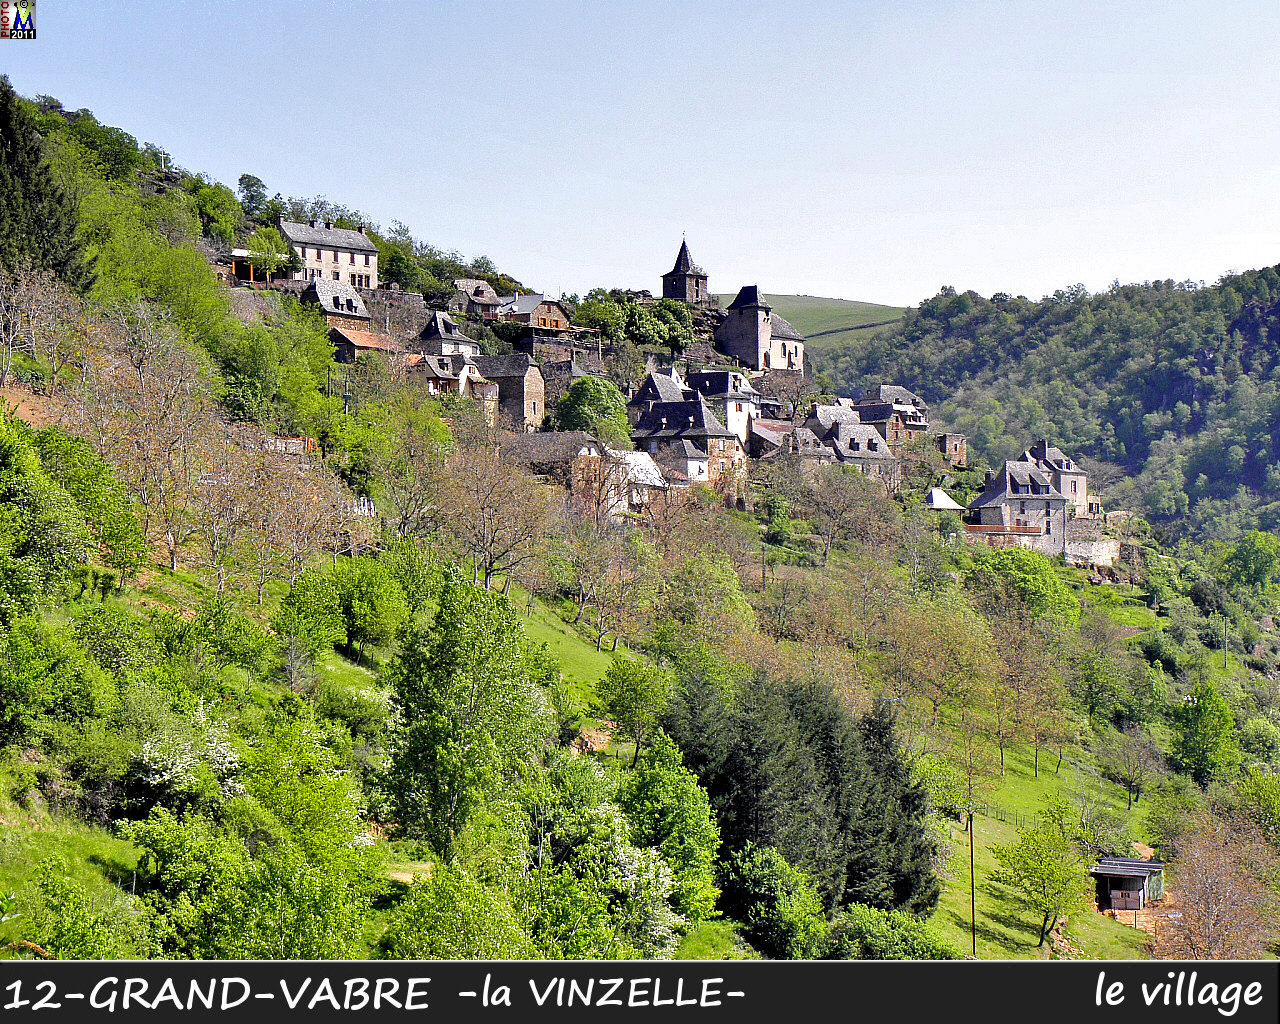 12GRAND-VABRE-Vinzelle_village_104.jpg